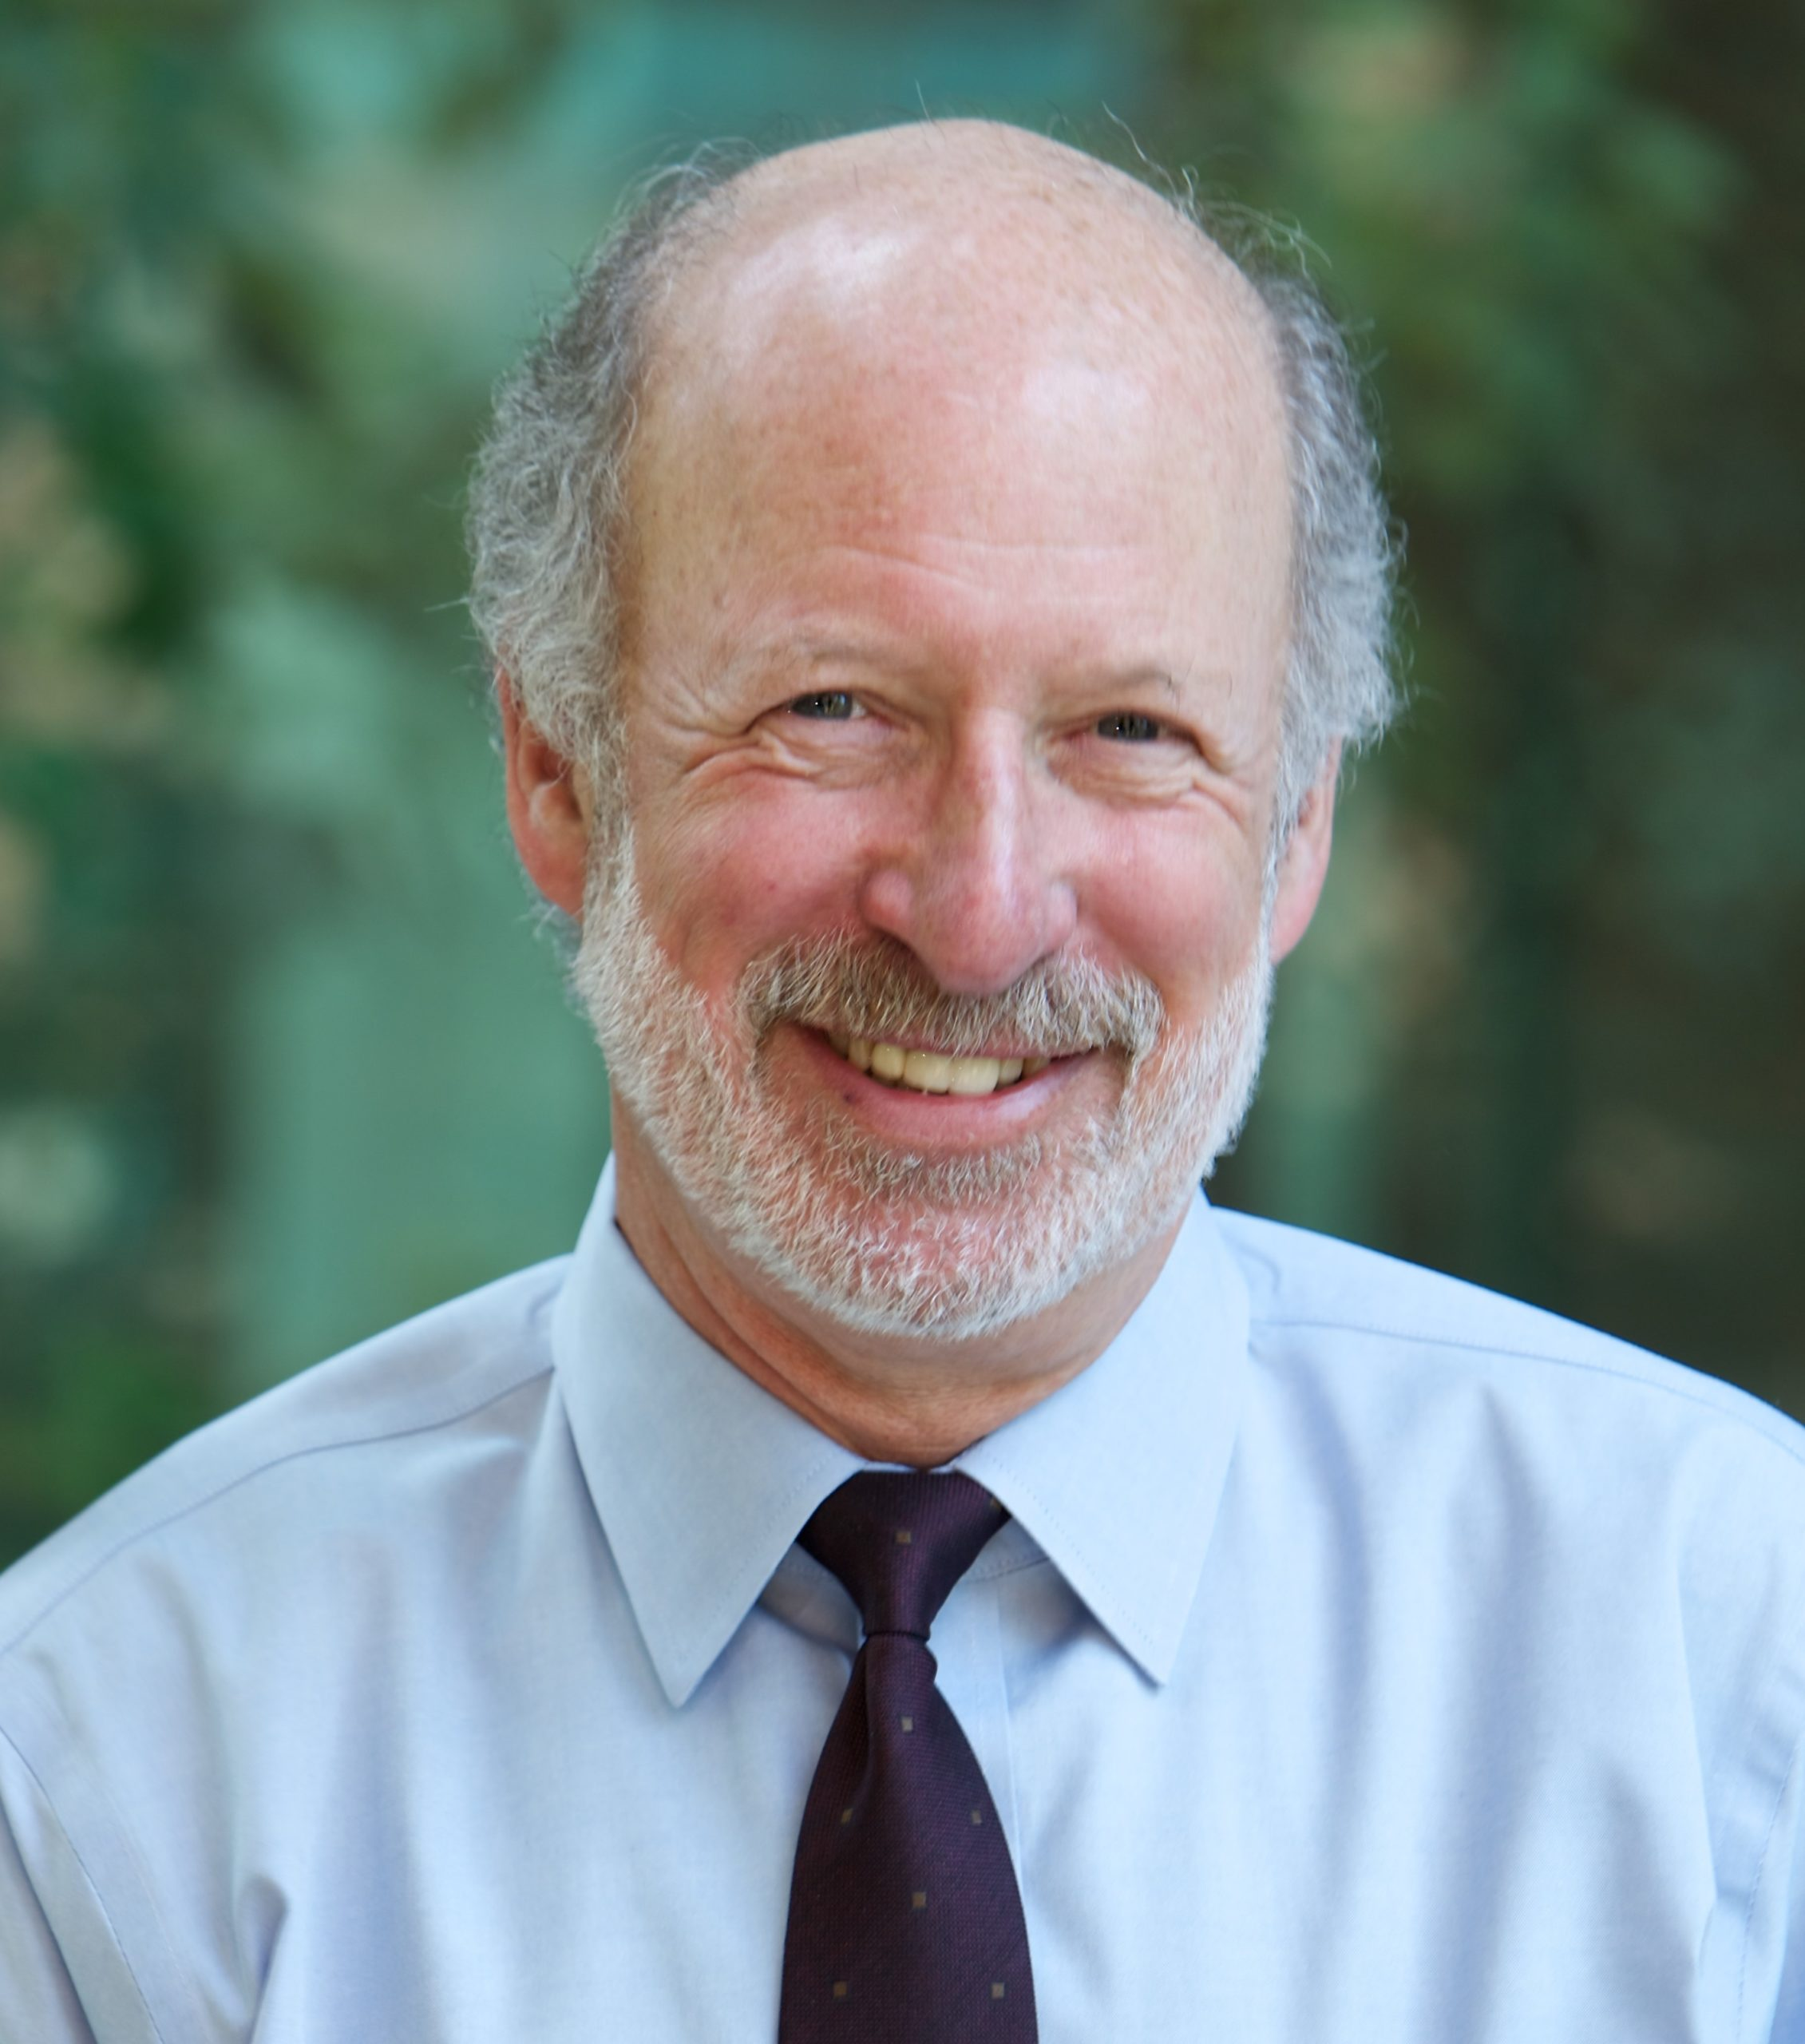 Frederick R. Appelbaum, MD